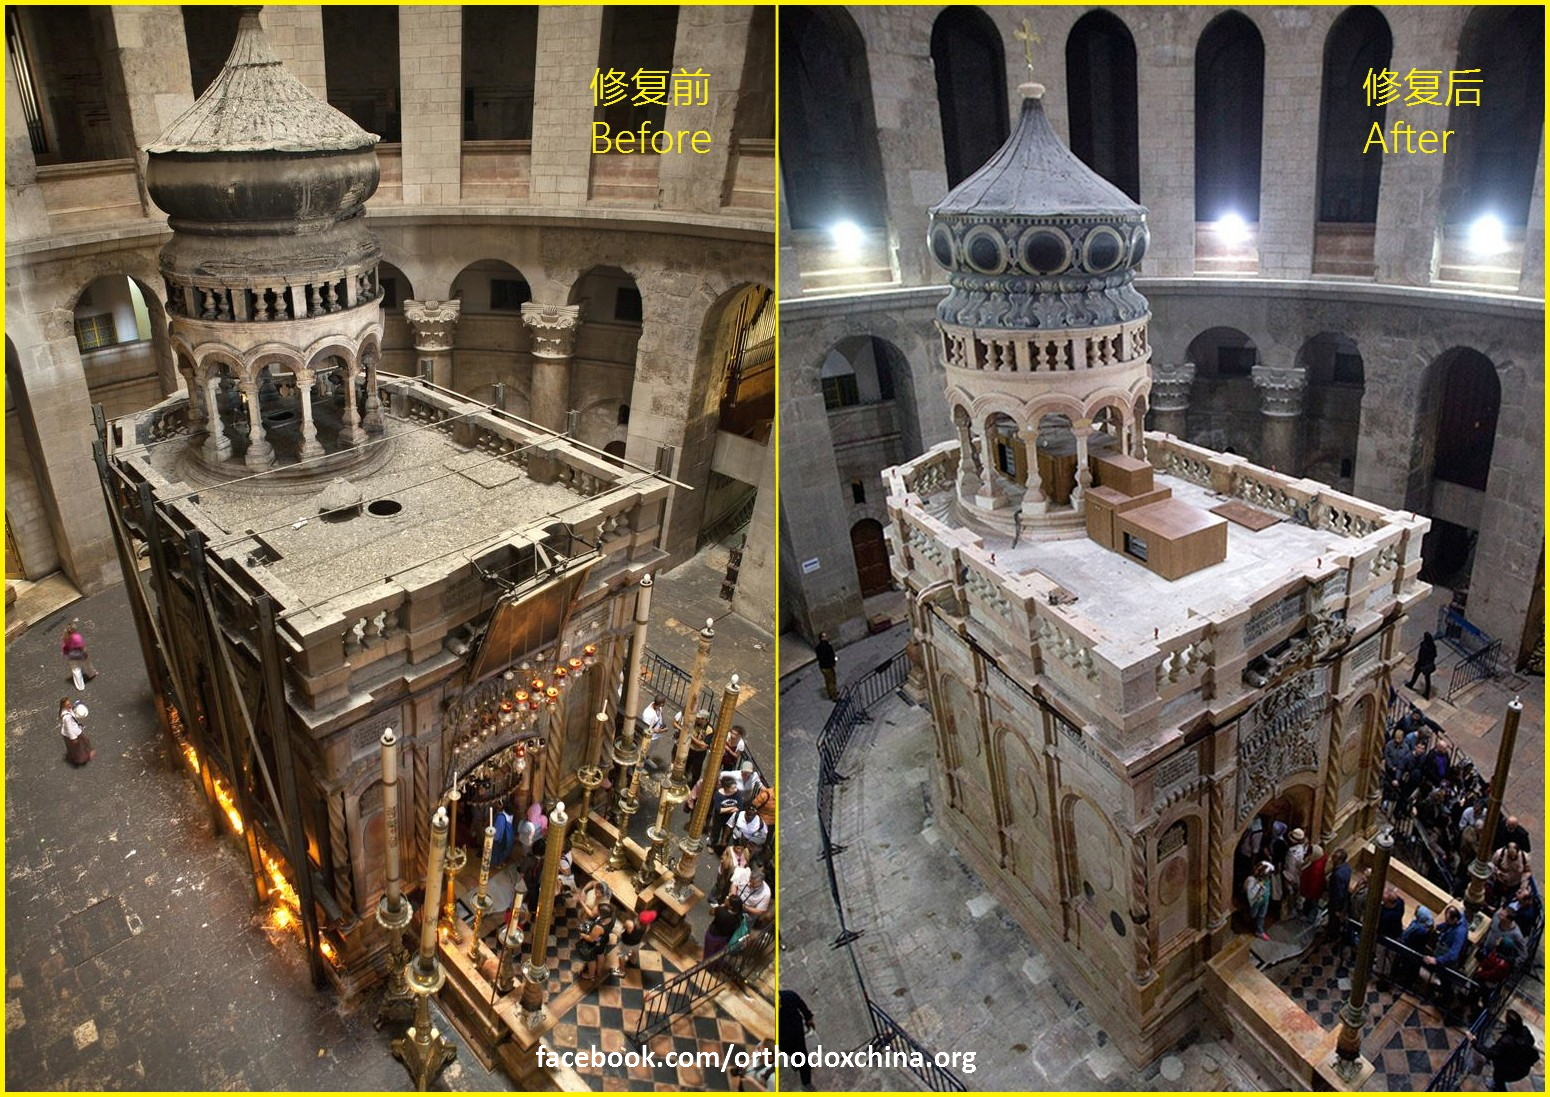 A before and after comparison of the Holy Sepulchre restoration in 2016.